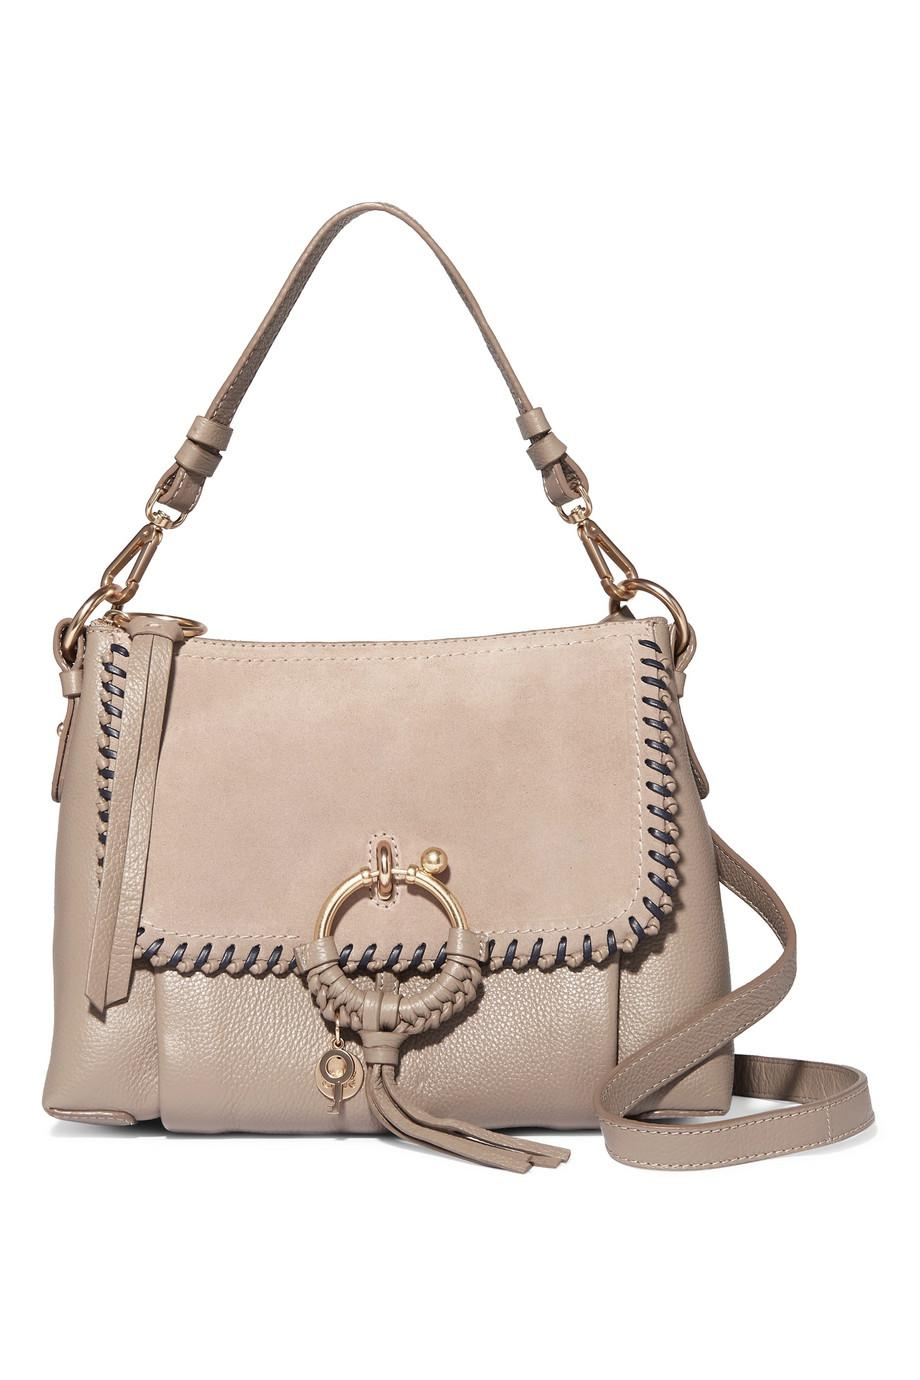 Joan Small Whipstitched Suede-paneled Textured-leather Shoulder Bag - Gray See By Chlo PyIqWqBn